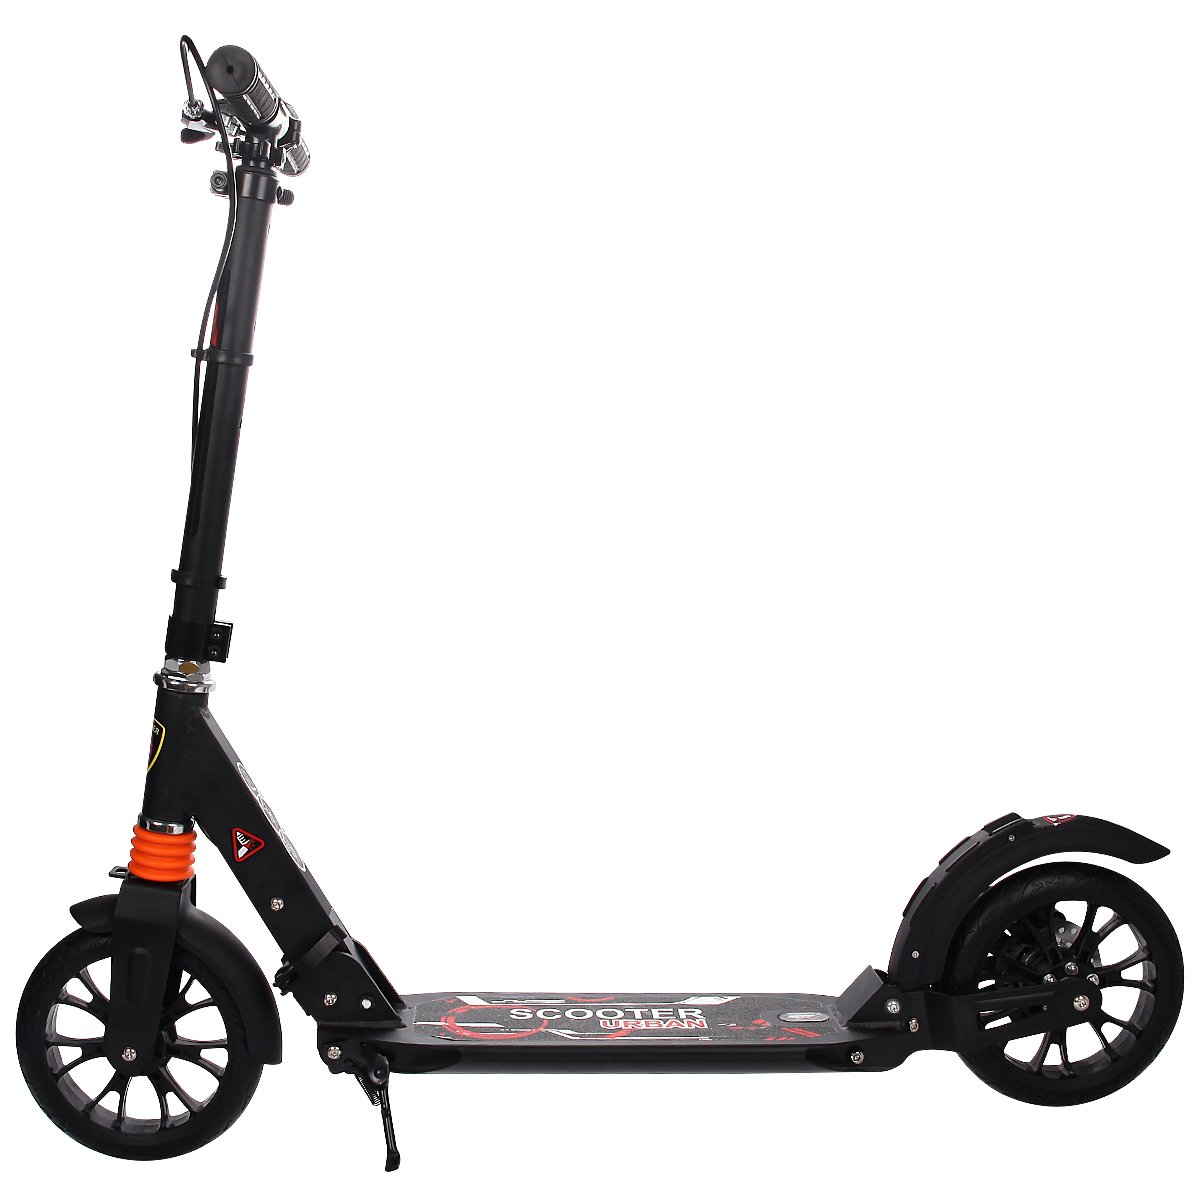 GYMAX Folding Kick Scooter for heavy adults